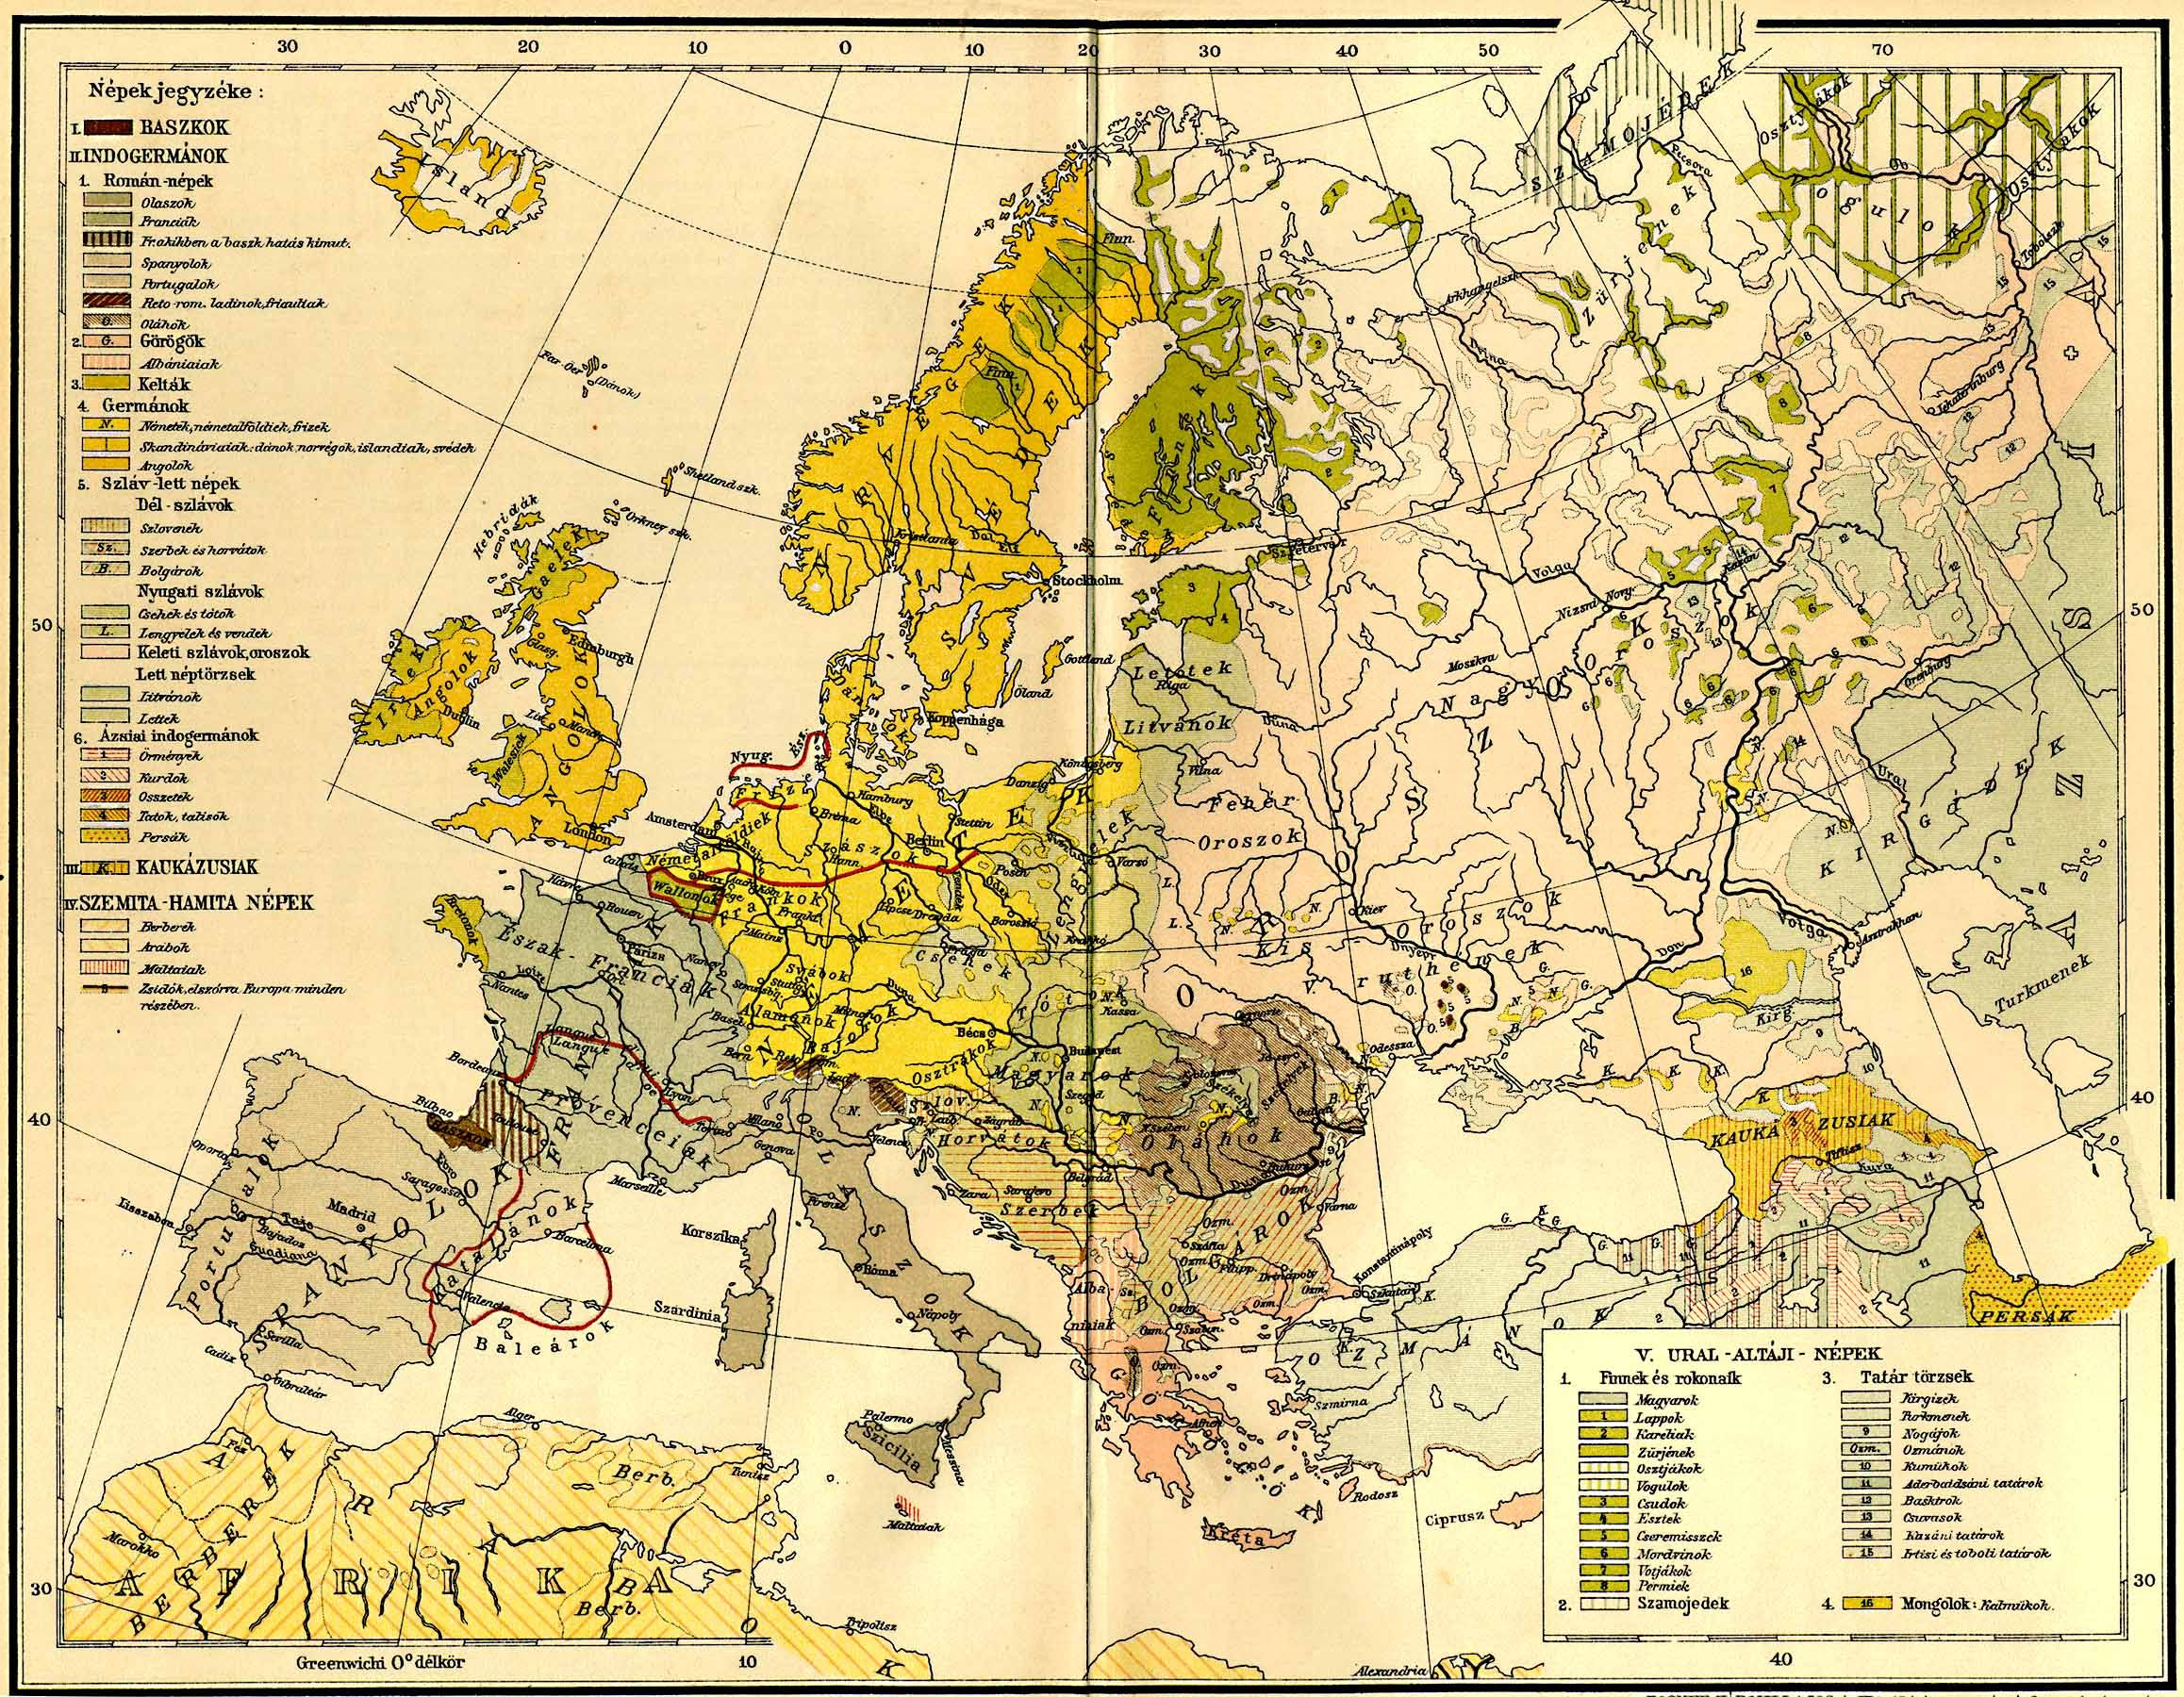 File:Europe ethnic map 1897 (hungarian).jpg - Wikimedia Commons on map of asia 1900, blank map europe 1800, map of spain, map of austria-hungary during ww1, map 10000 years in the future, map south america 1800, map with 7 emirates uae, map of absolute monarchs, map russia 1800, map in europe, map west indies 1800,